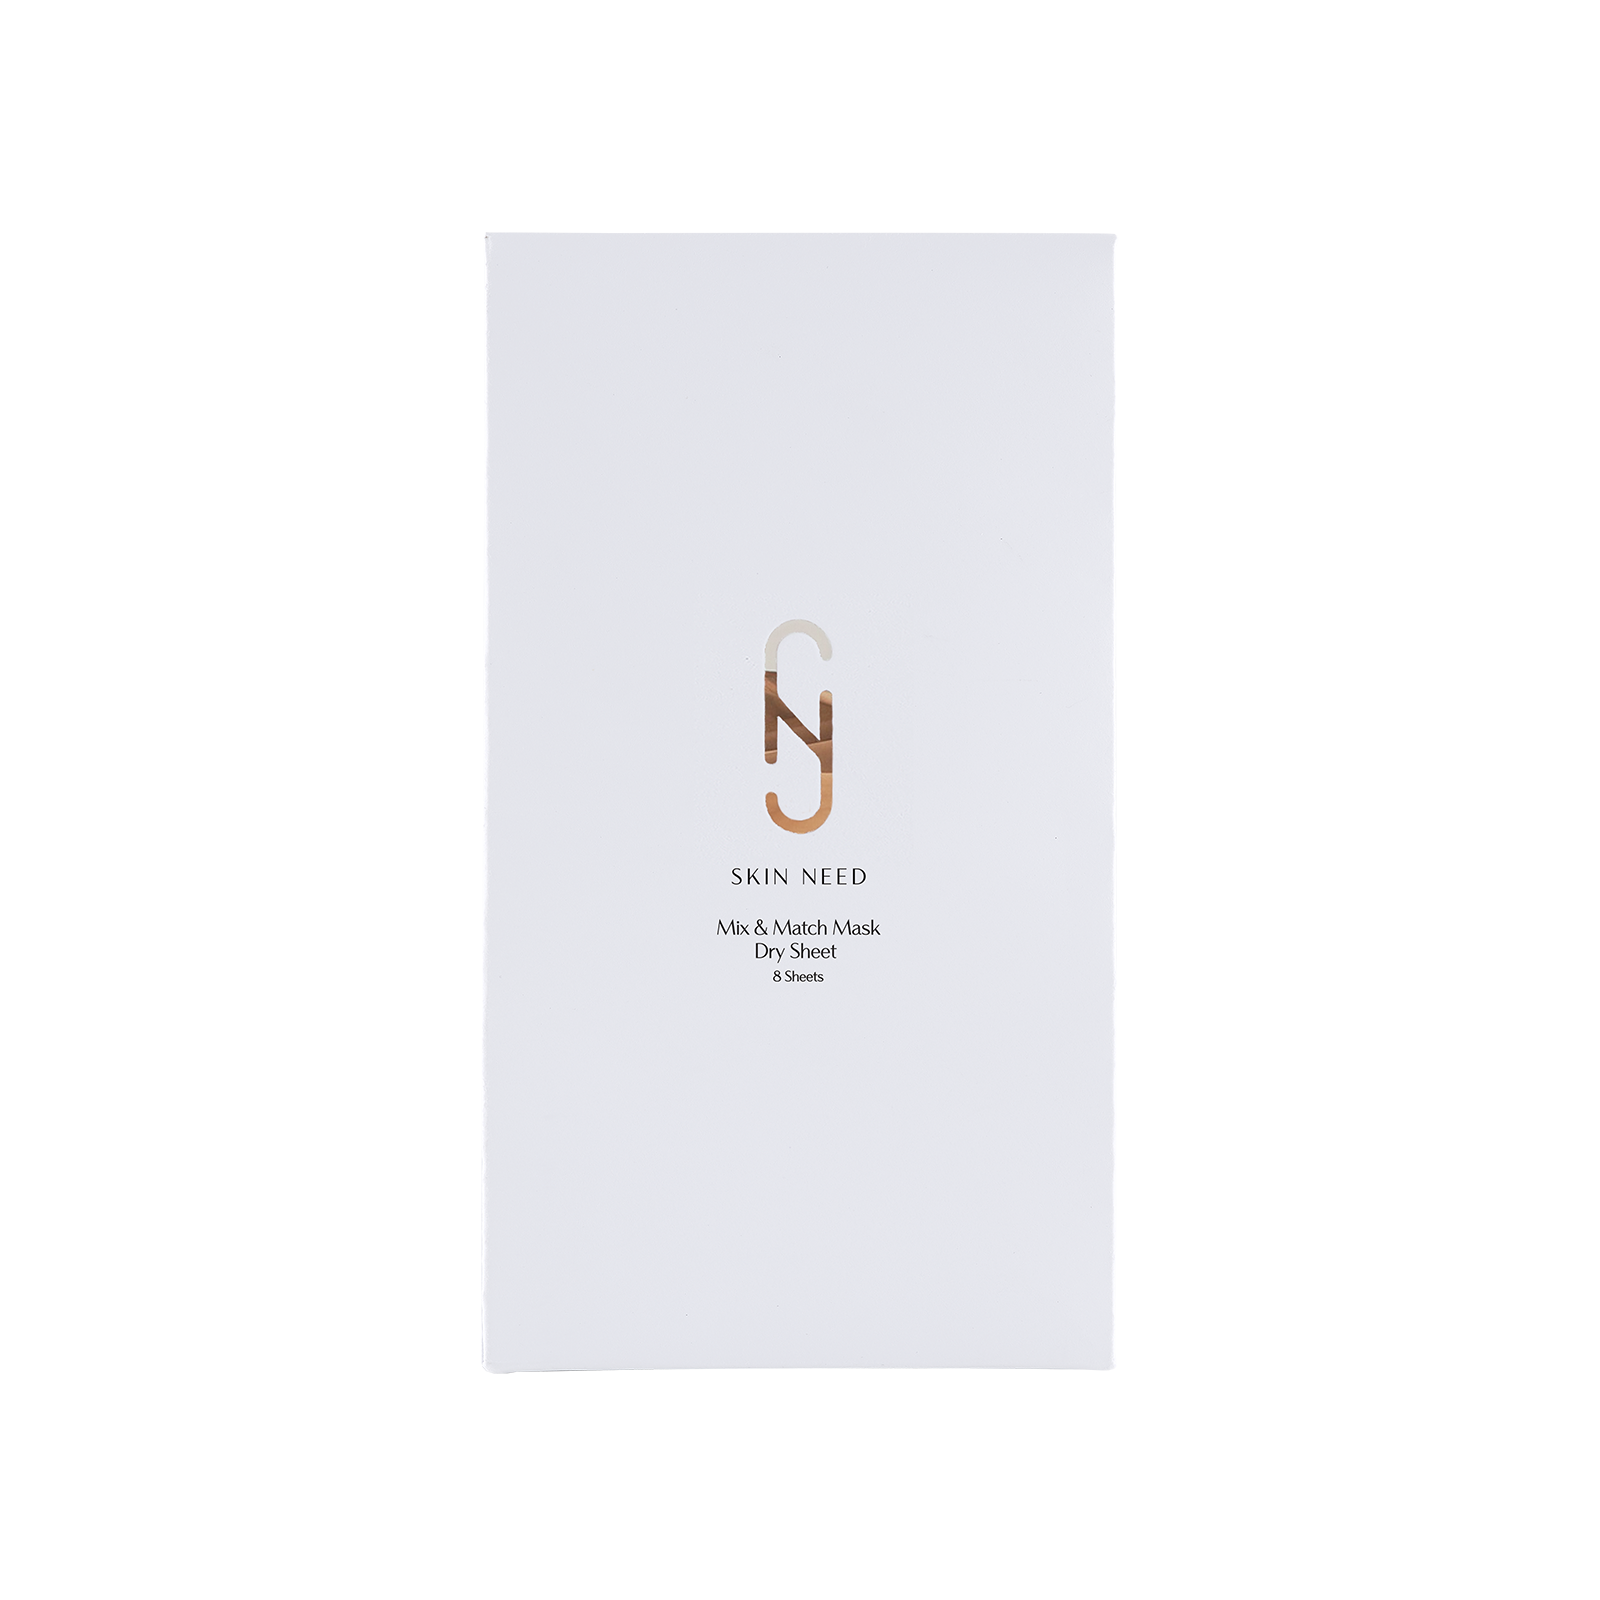 Protein Mask Sheet by Skin Need | Nourish Clean Beauty Hong Kong